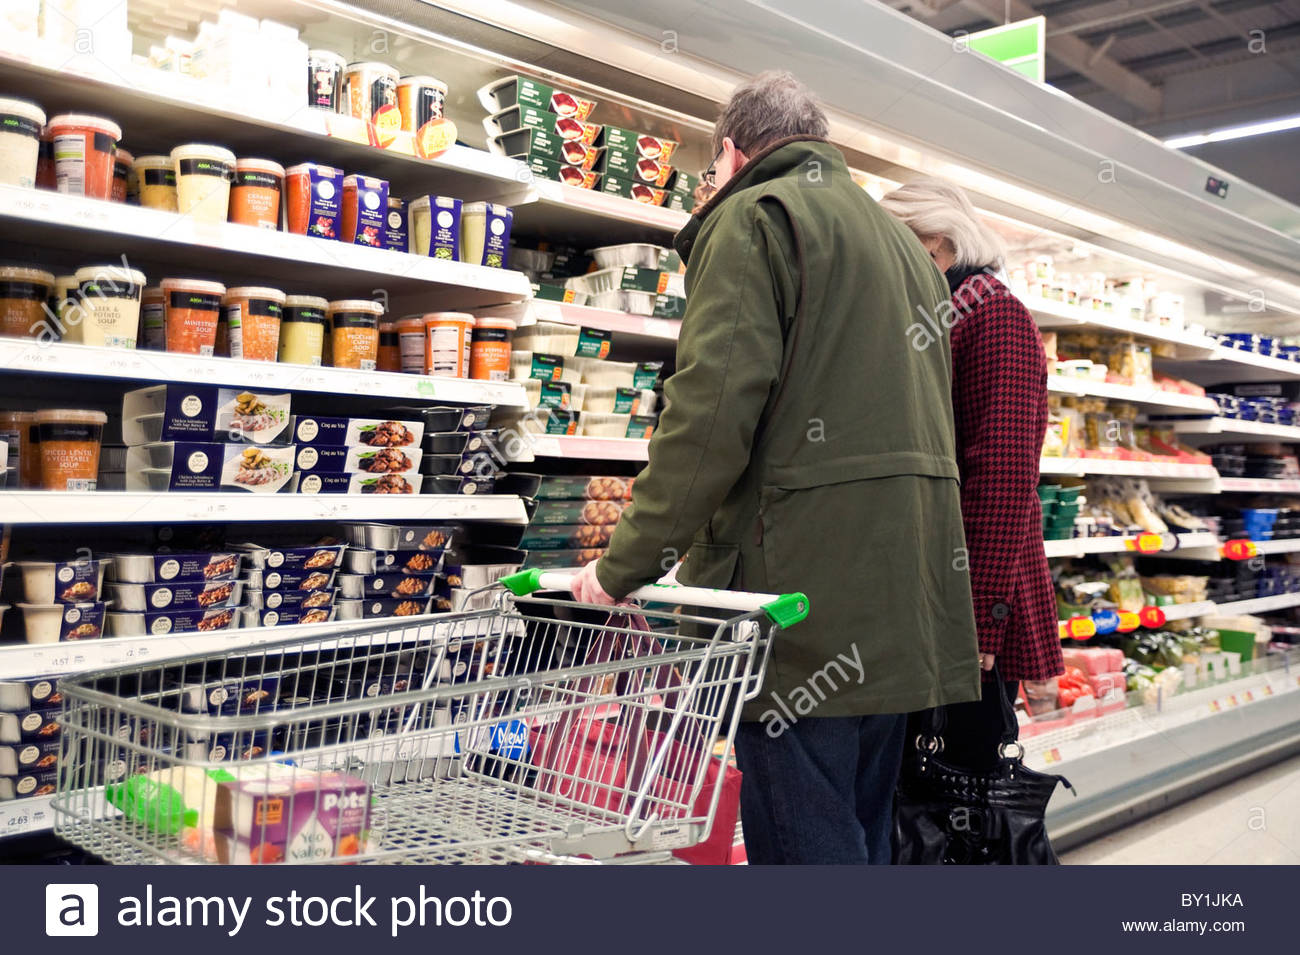 Couple shopping in an Asda supermarket, UK. Man & woman with a shopping trolley inside the store. - Stock Image